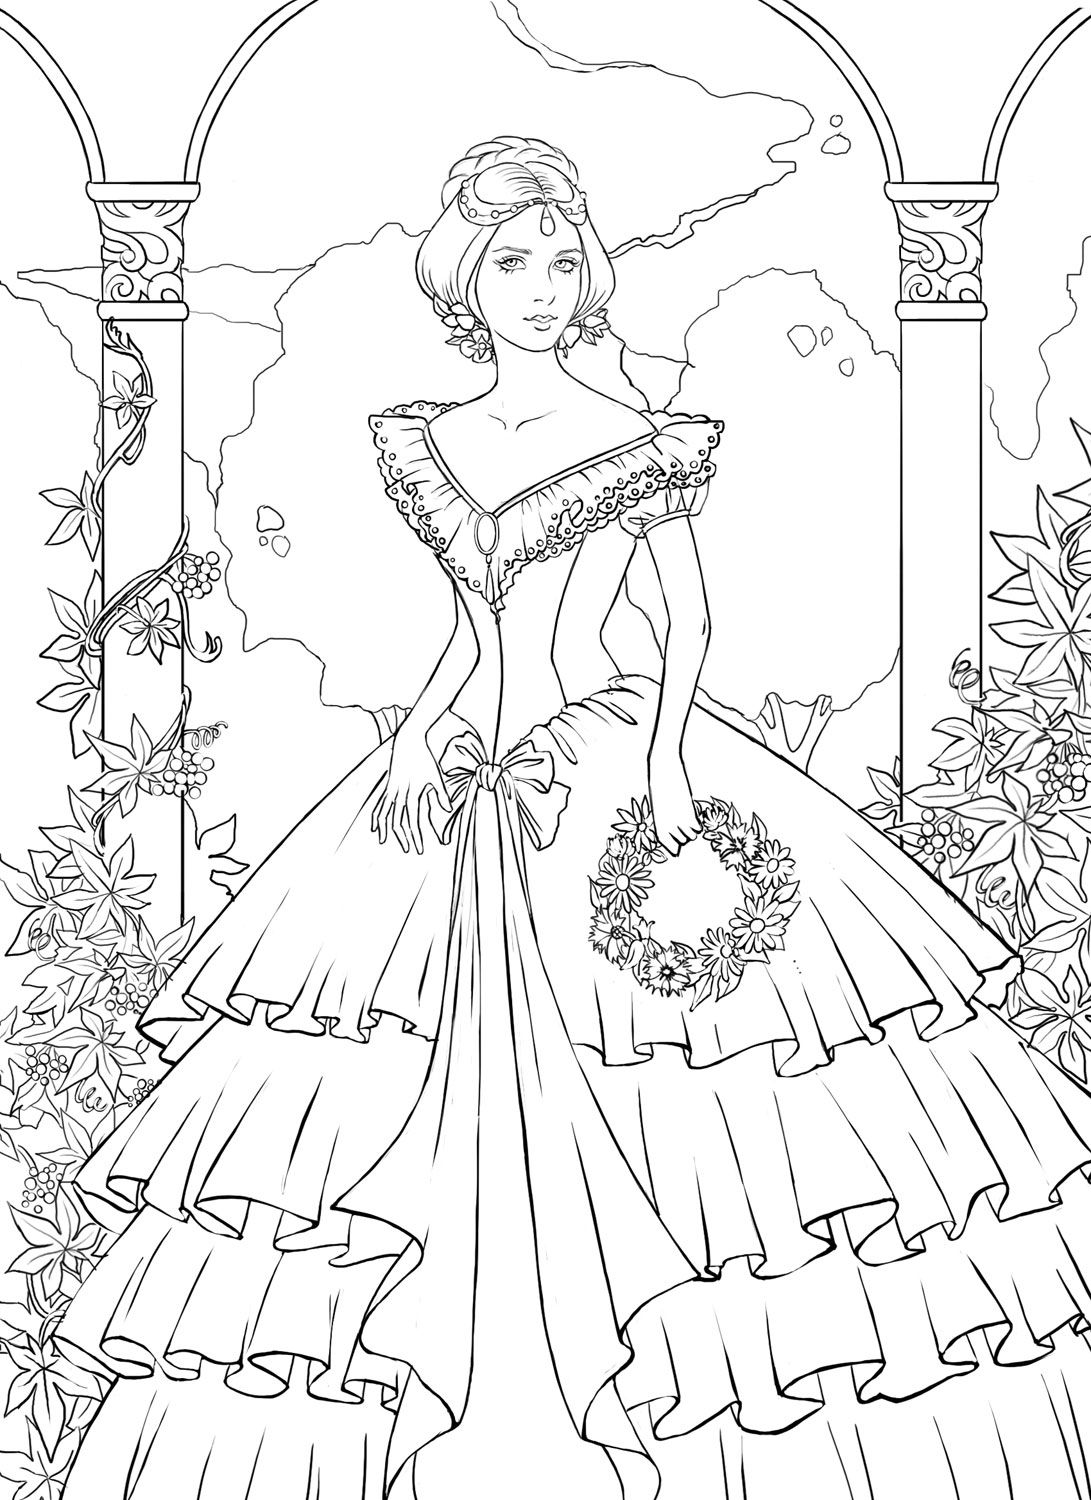 Free coloring pages landscapes